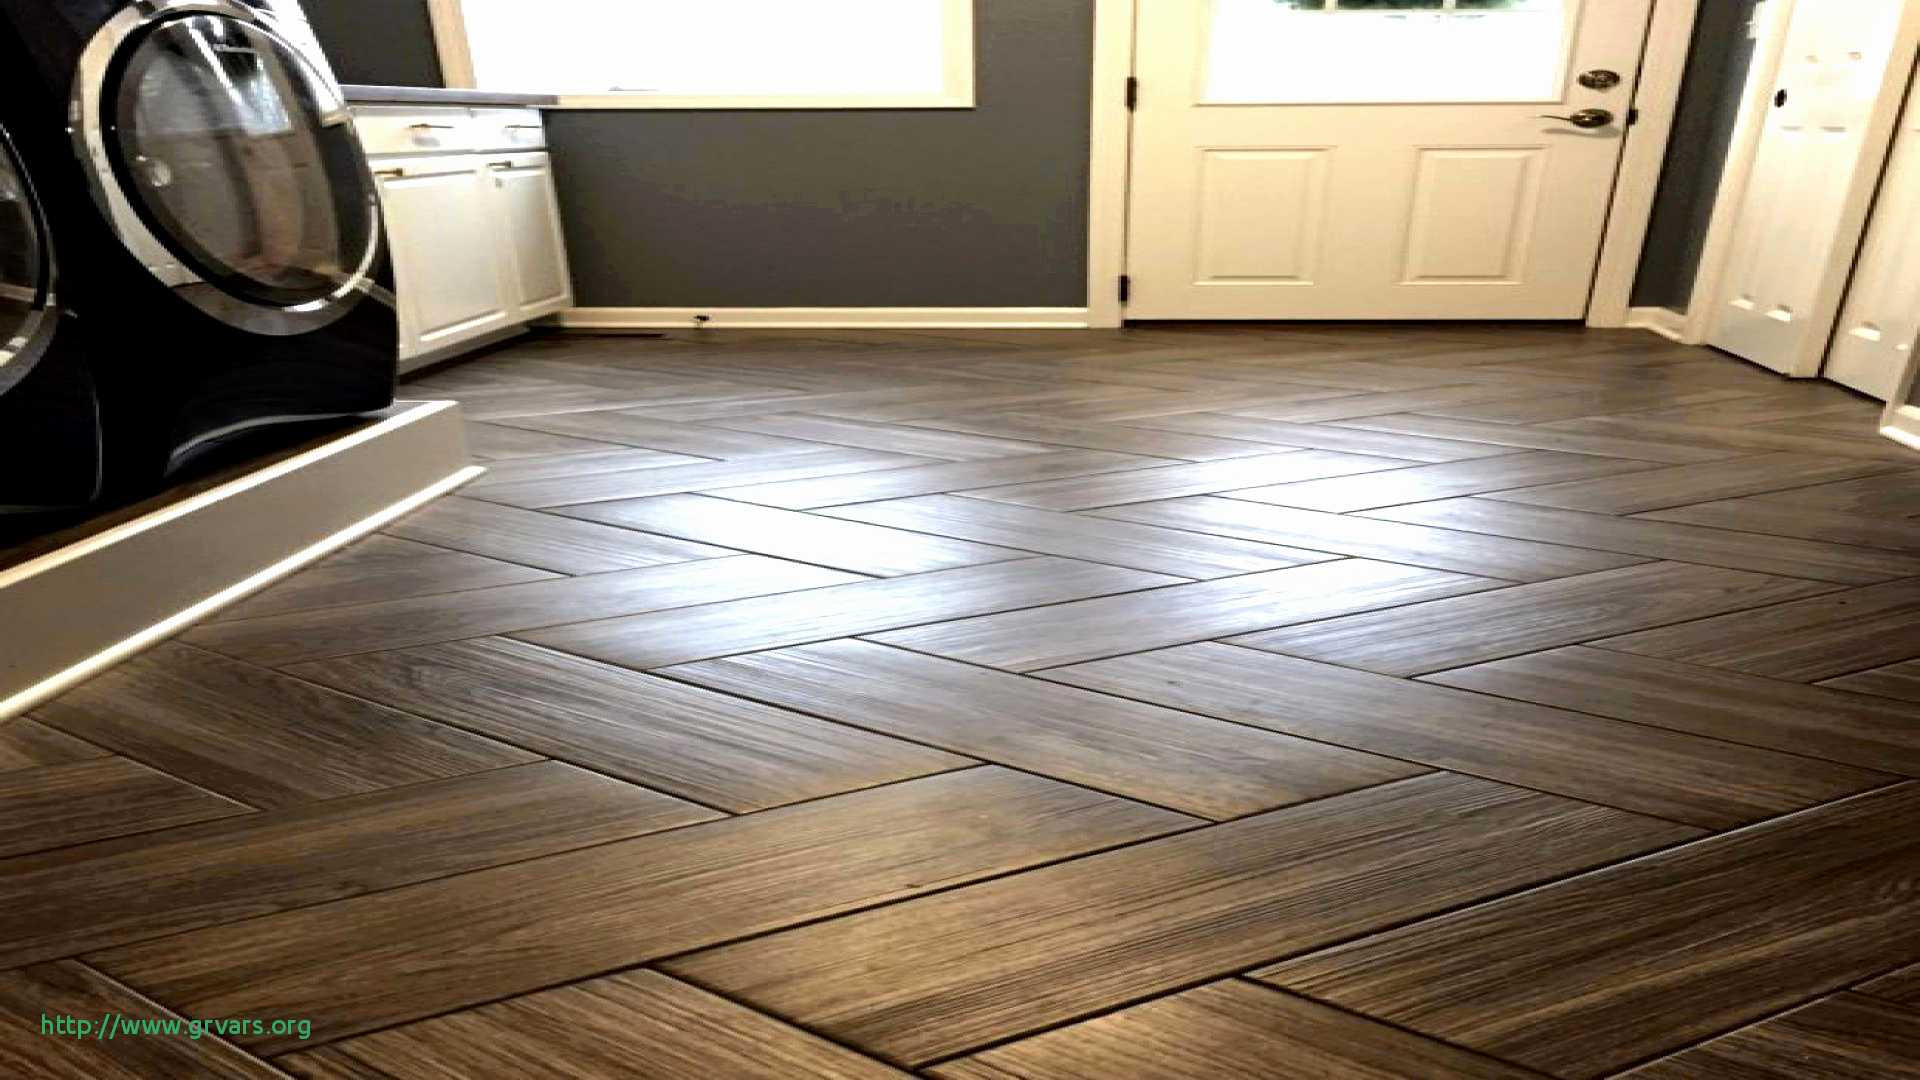 hardwood floor cleaner disinfectant of 18 meilleur de linoleum floor cleaner machine ideas blog with kitchen floor tiles home depot elegant s media cache ak0 pinimg 736x 43 0d 97 best